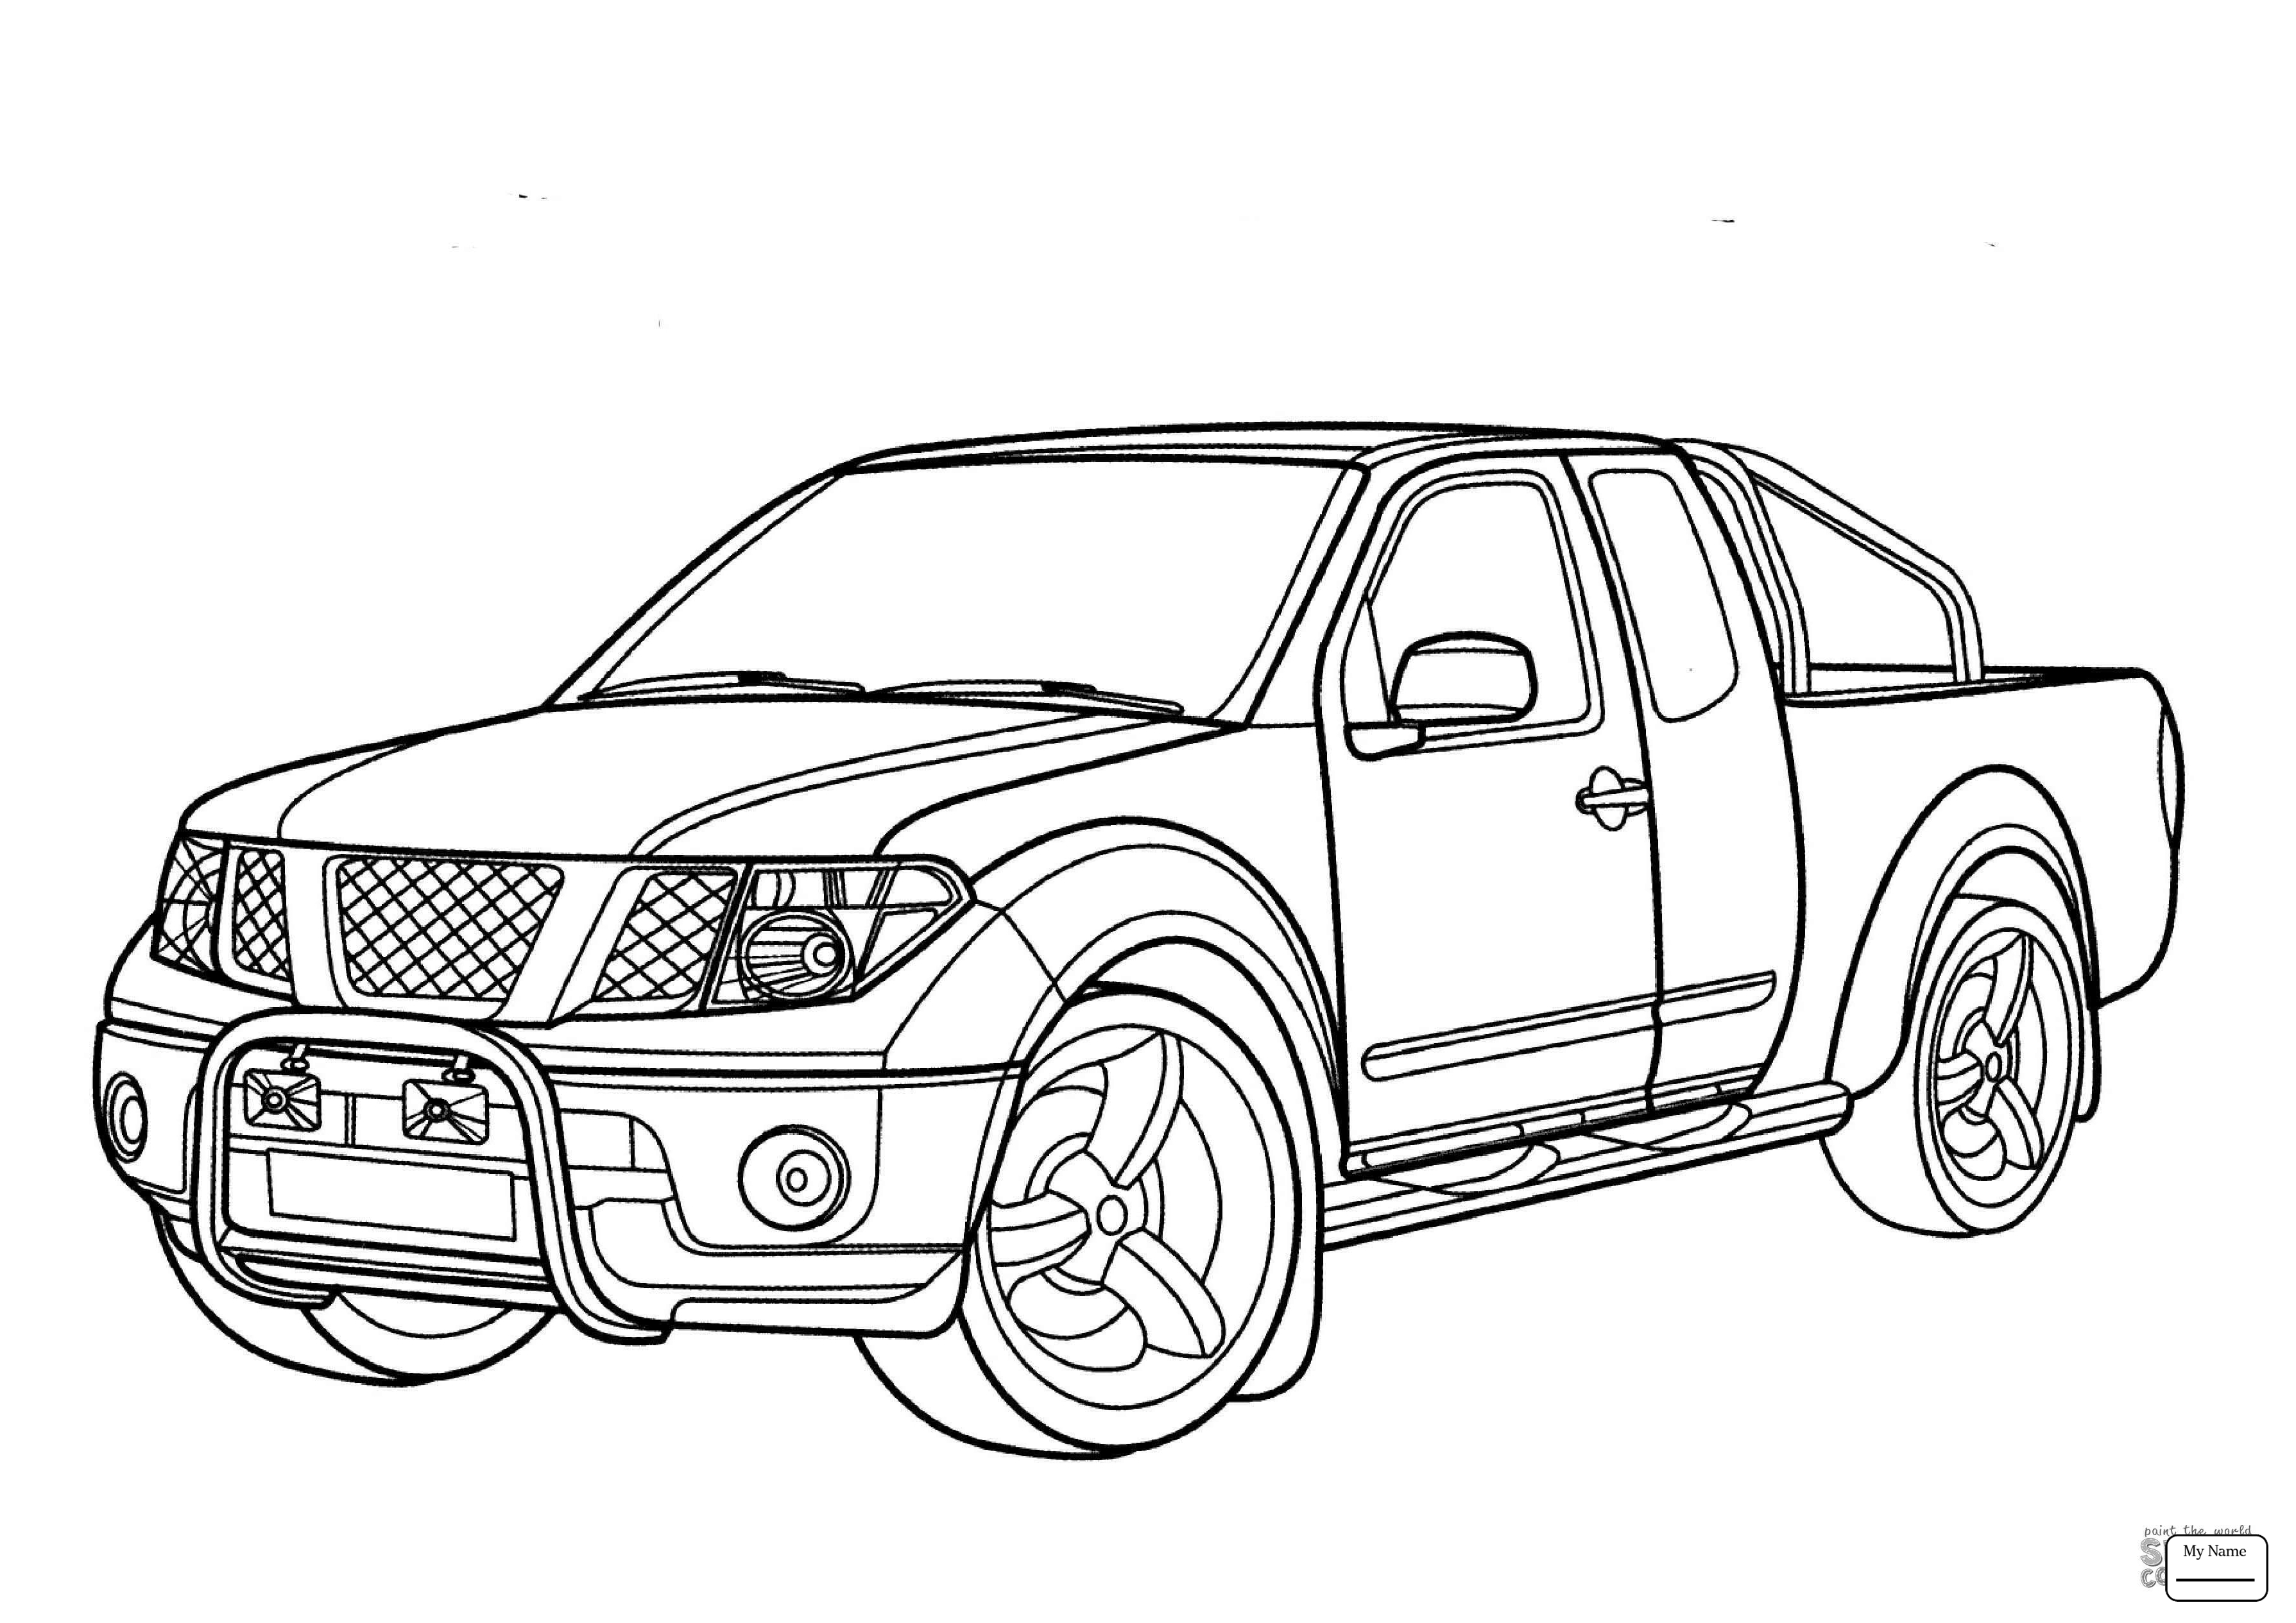 nissan gtr colouring pages fast and furious coloring pages nissan gtr r35 educative gtr colouring pages nissan